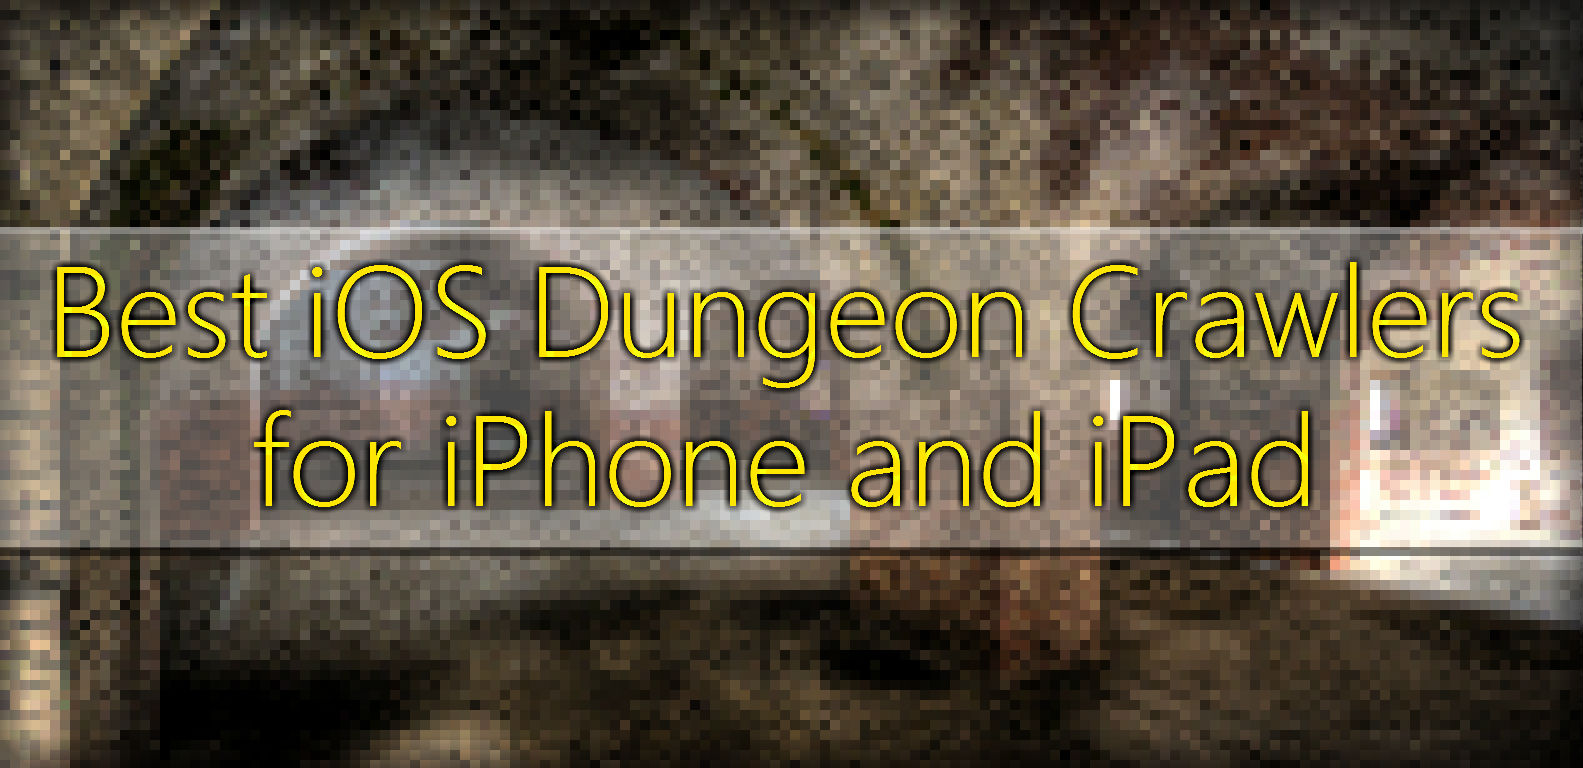 Best iOS Dungeon Crawlers for iPhone and iPad